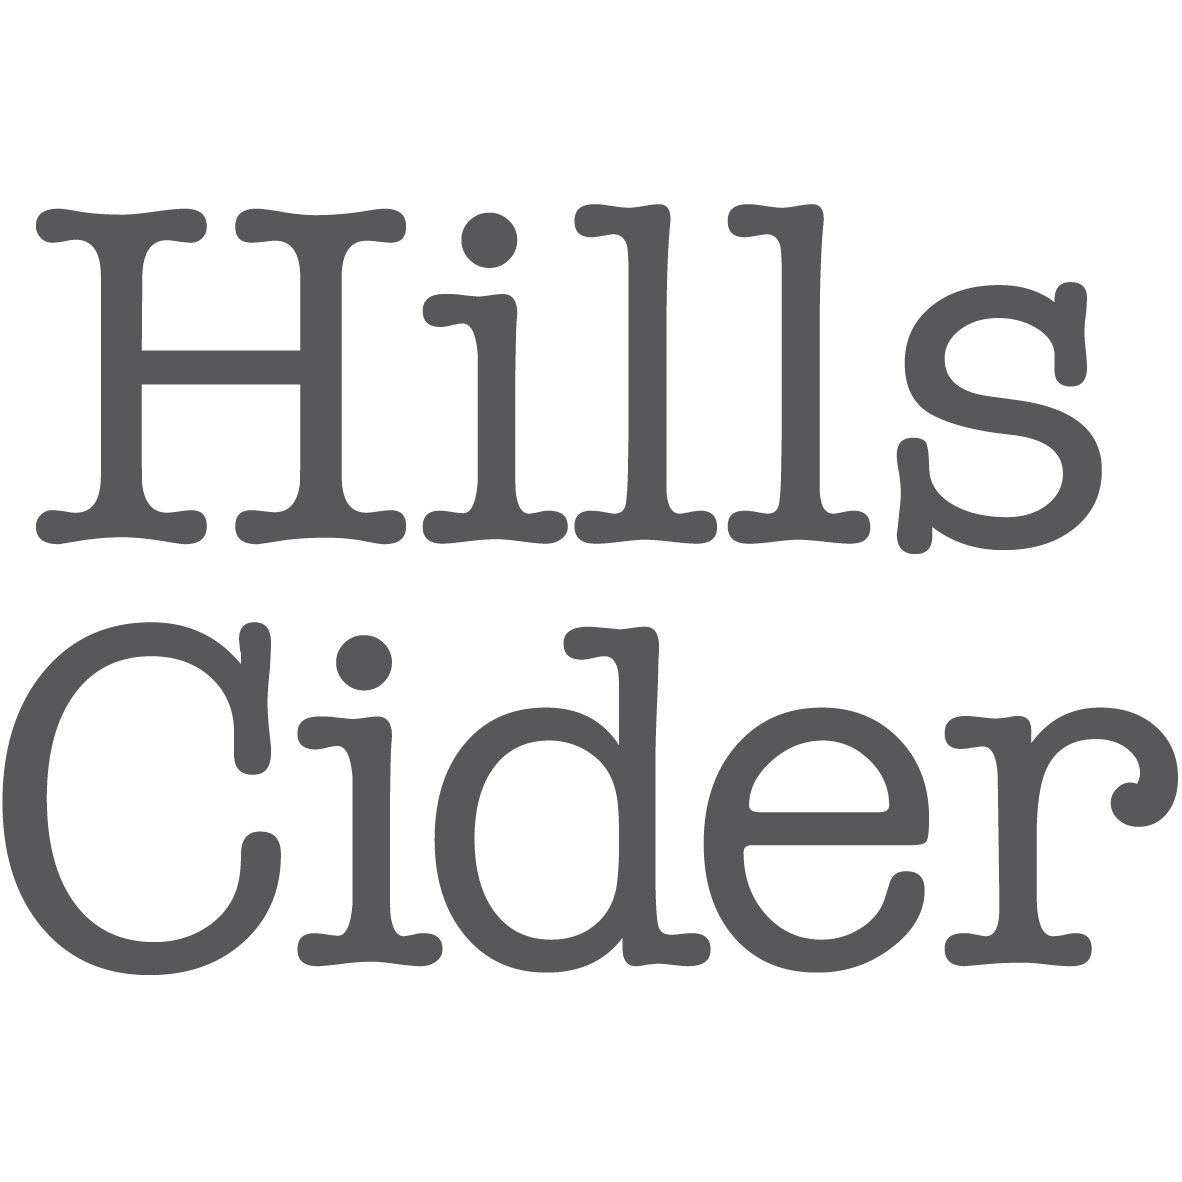 The Hills Cider Co.